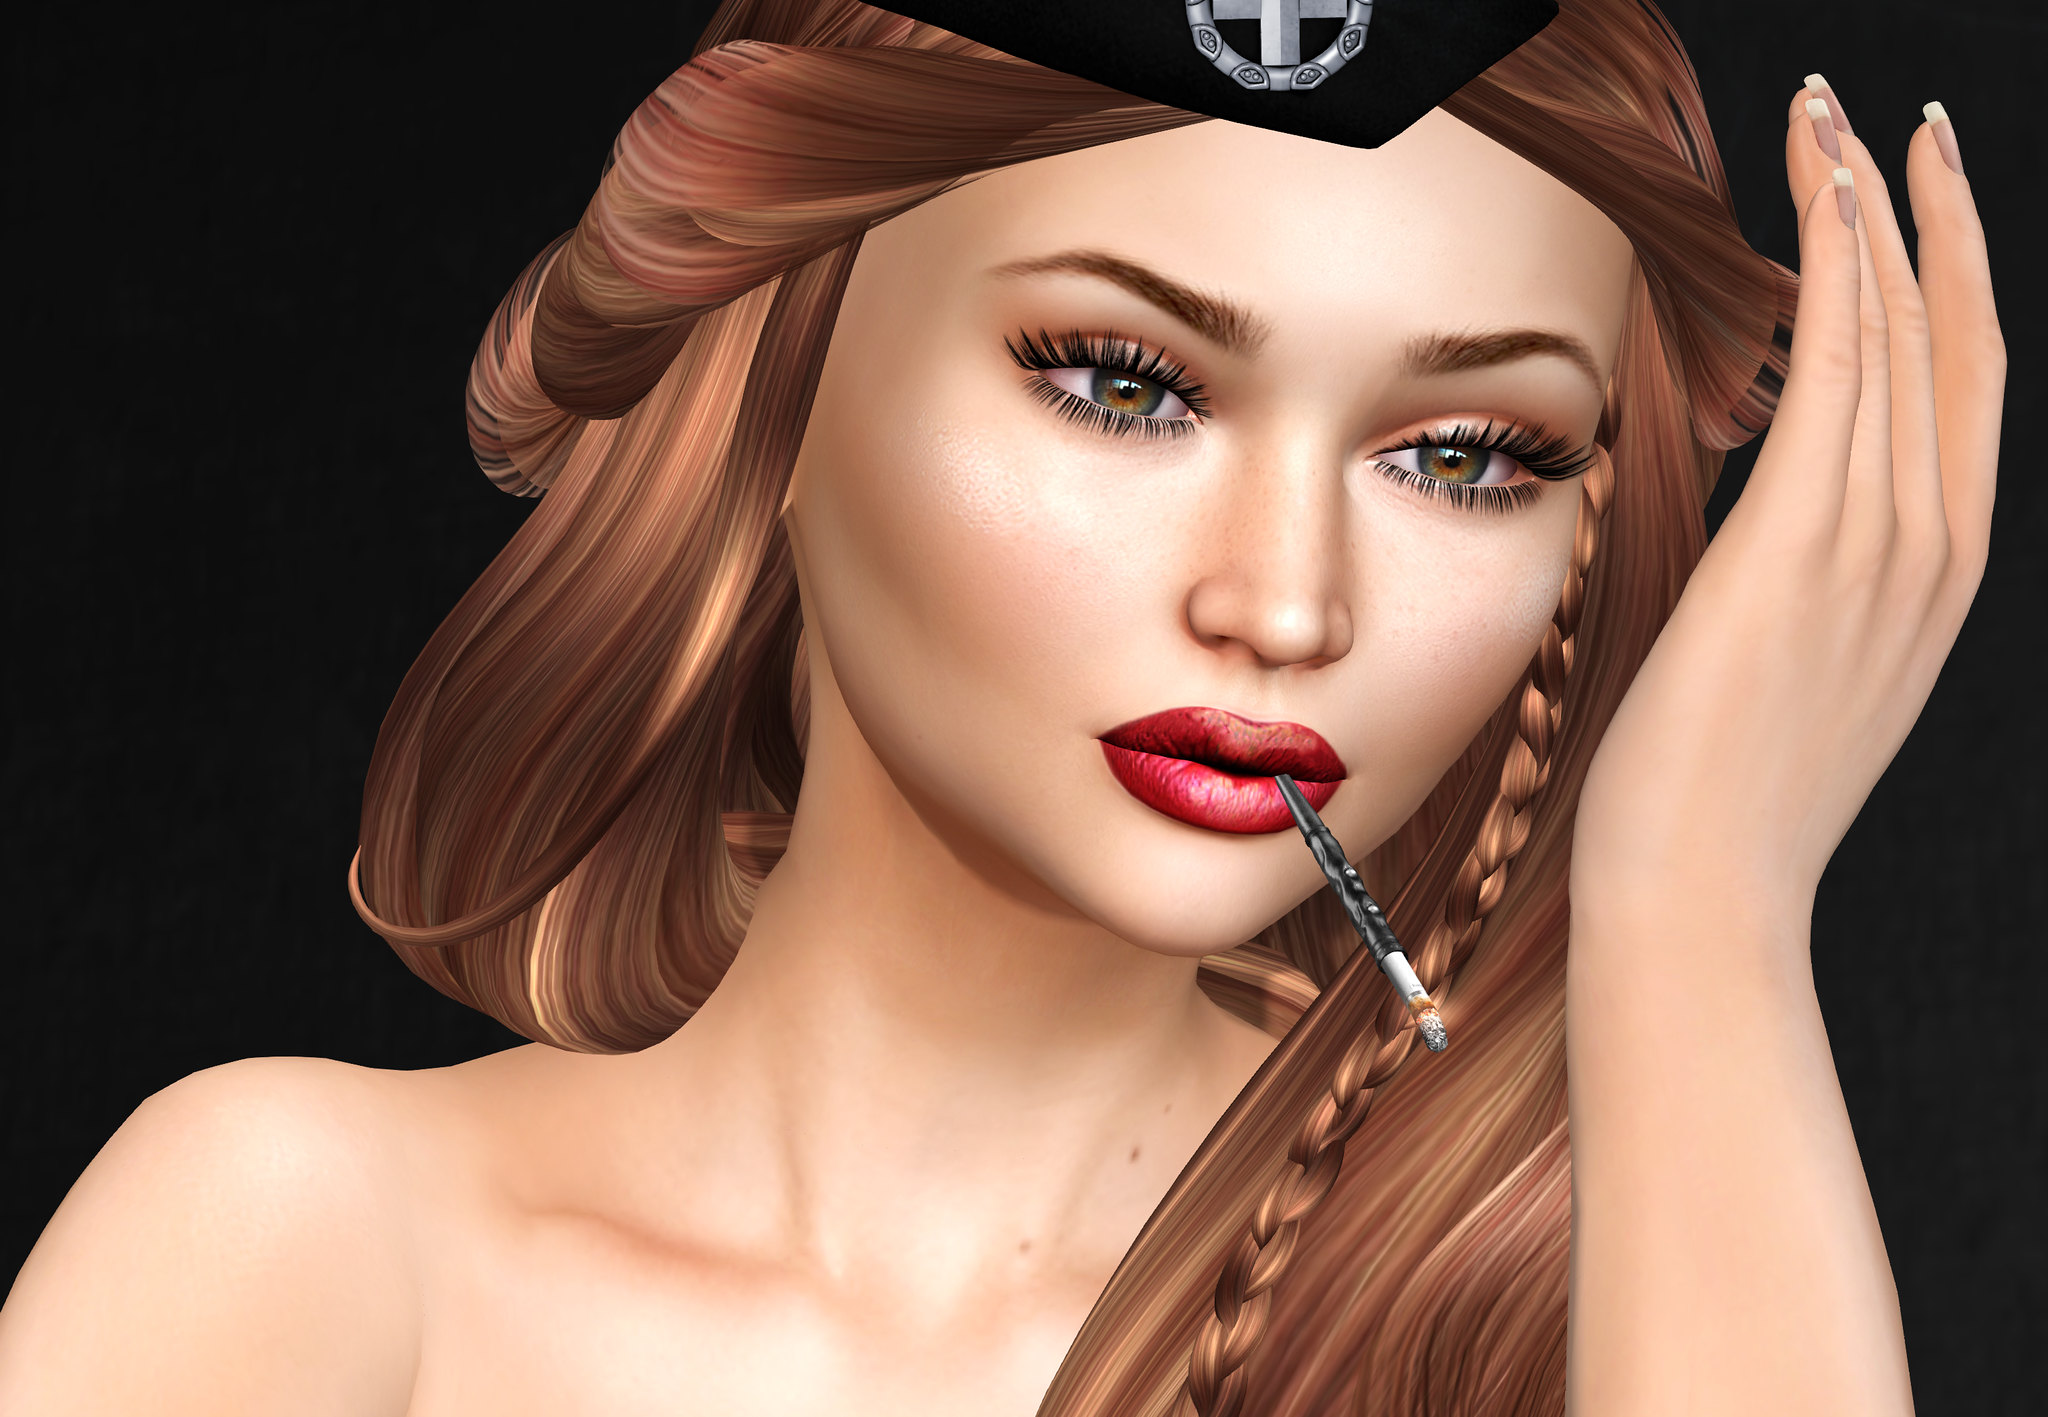 EMOtions, Dessia hair, AG Eyes, Skinnery Lipstick and skin